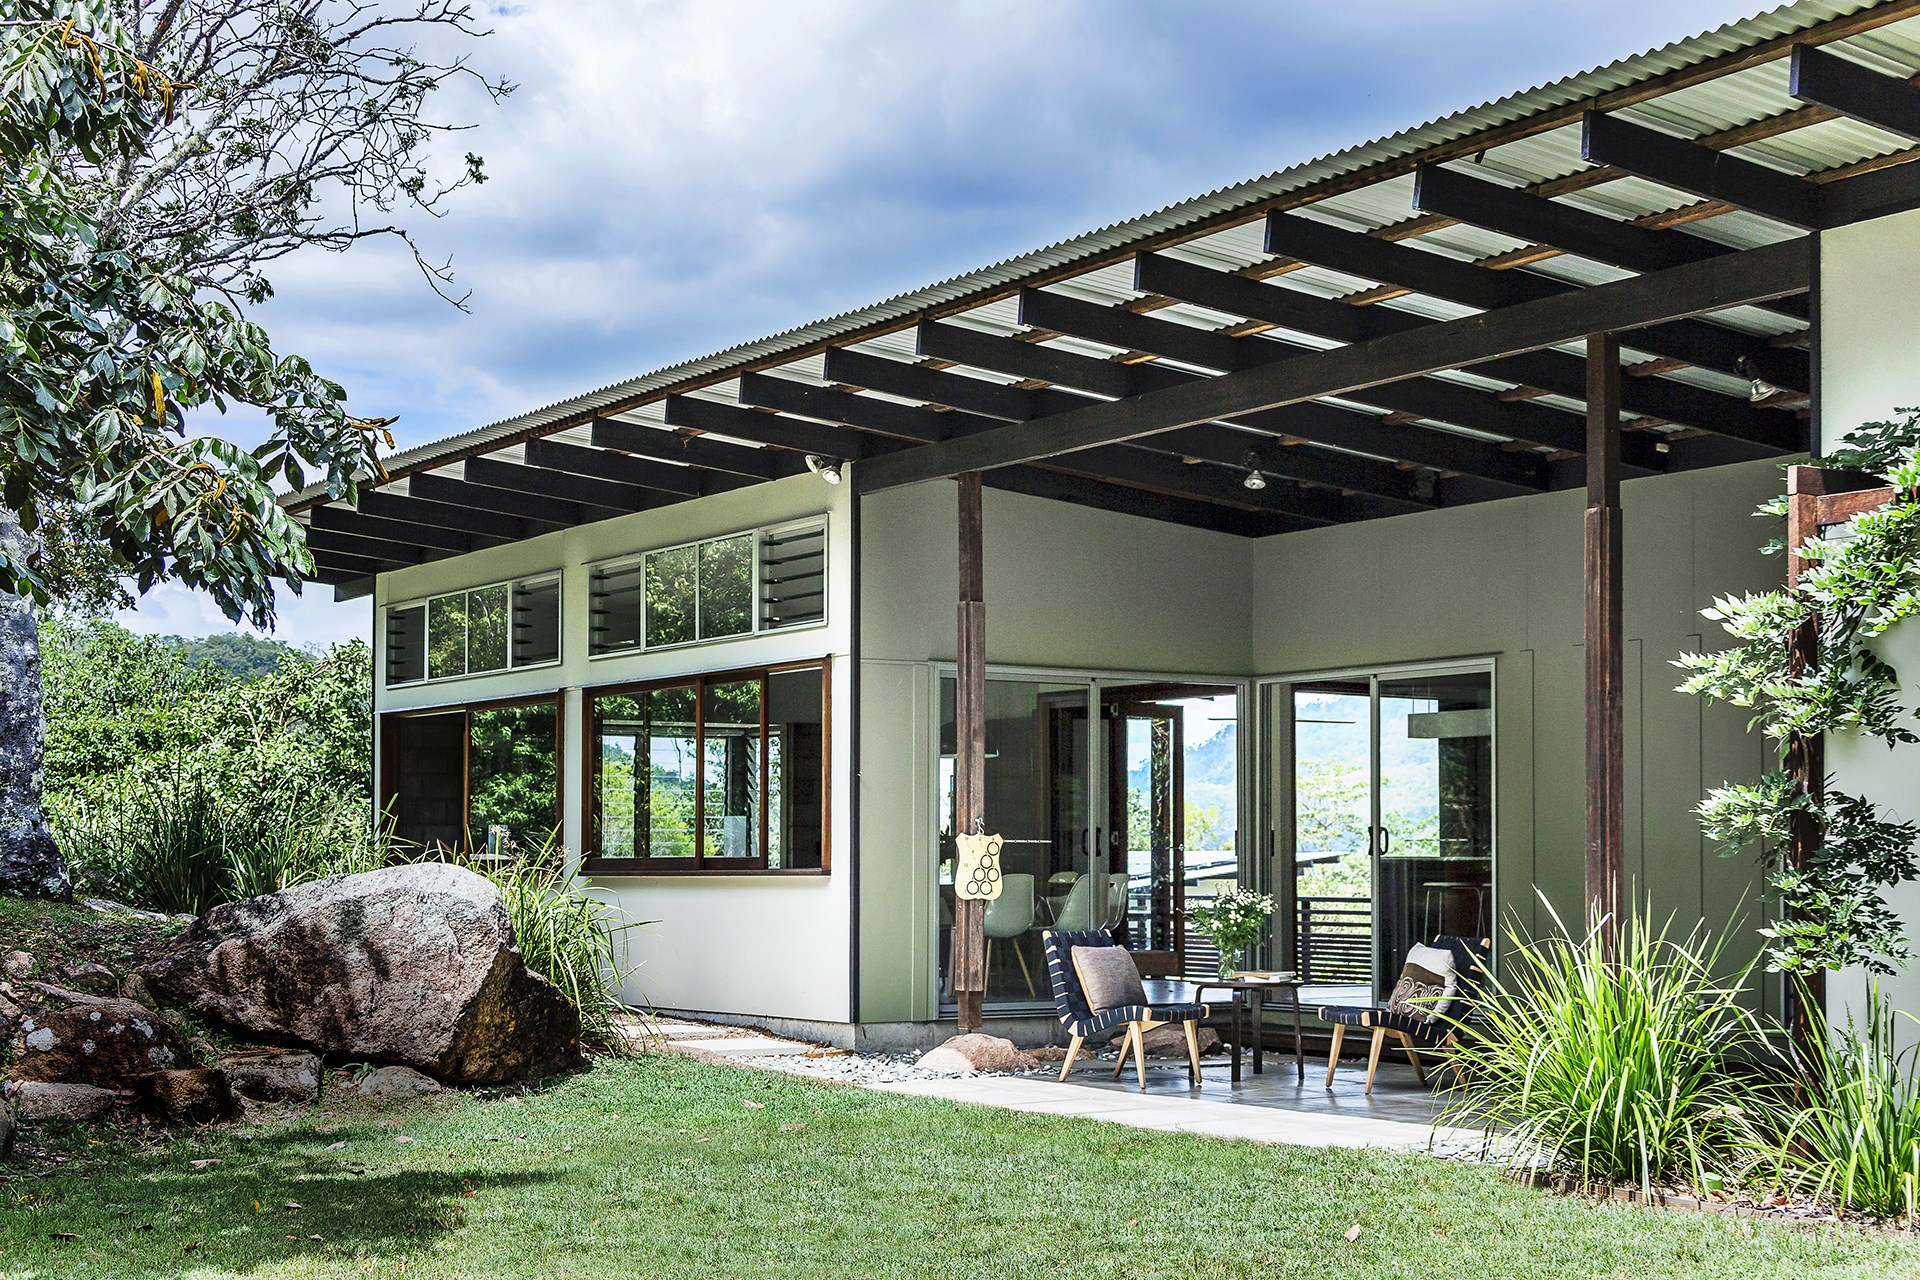 This eco-friendly home was built in four stages over eight years on a tranquil 2-hectare block in the hinterland behind Brisbane. Find out more about this [beautiful bush home](http://www.homestolove.com.au/gallery-chris-and-sonias-eco-friendly-queensland-bush-home-1990). Photo: Maree Homer / *Australian House & Garden*